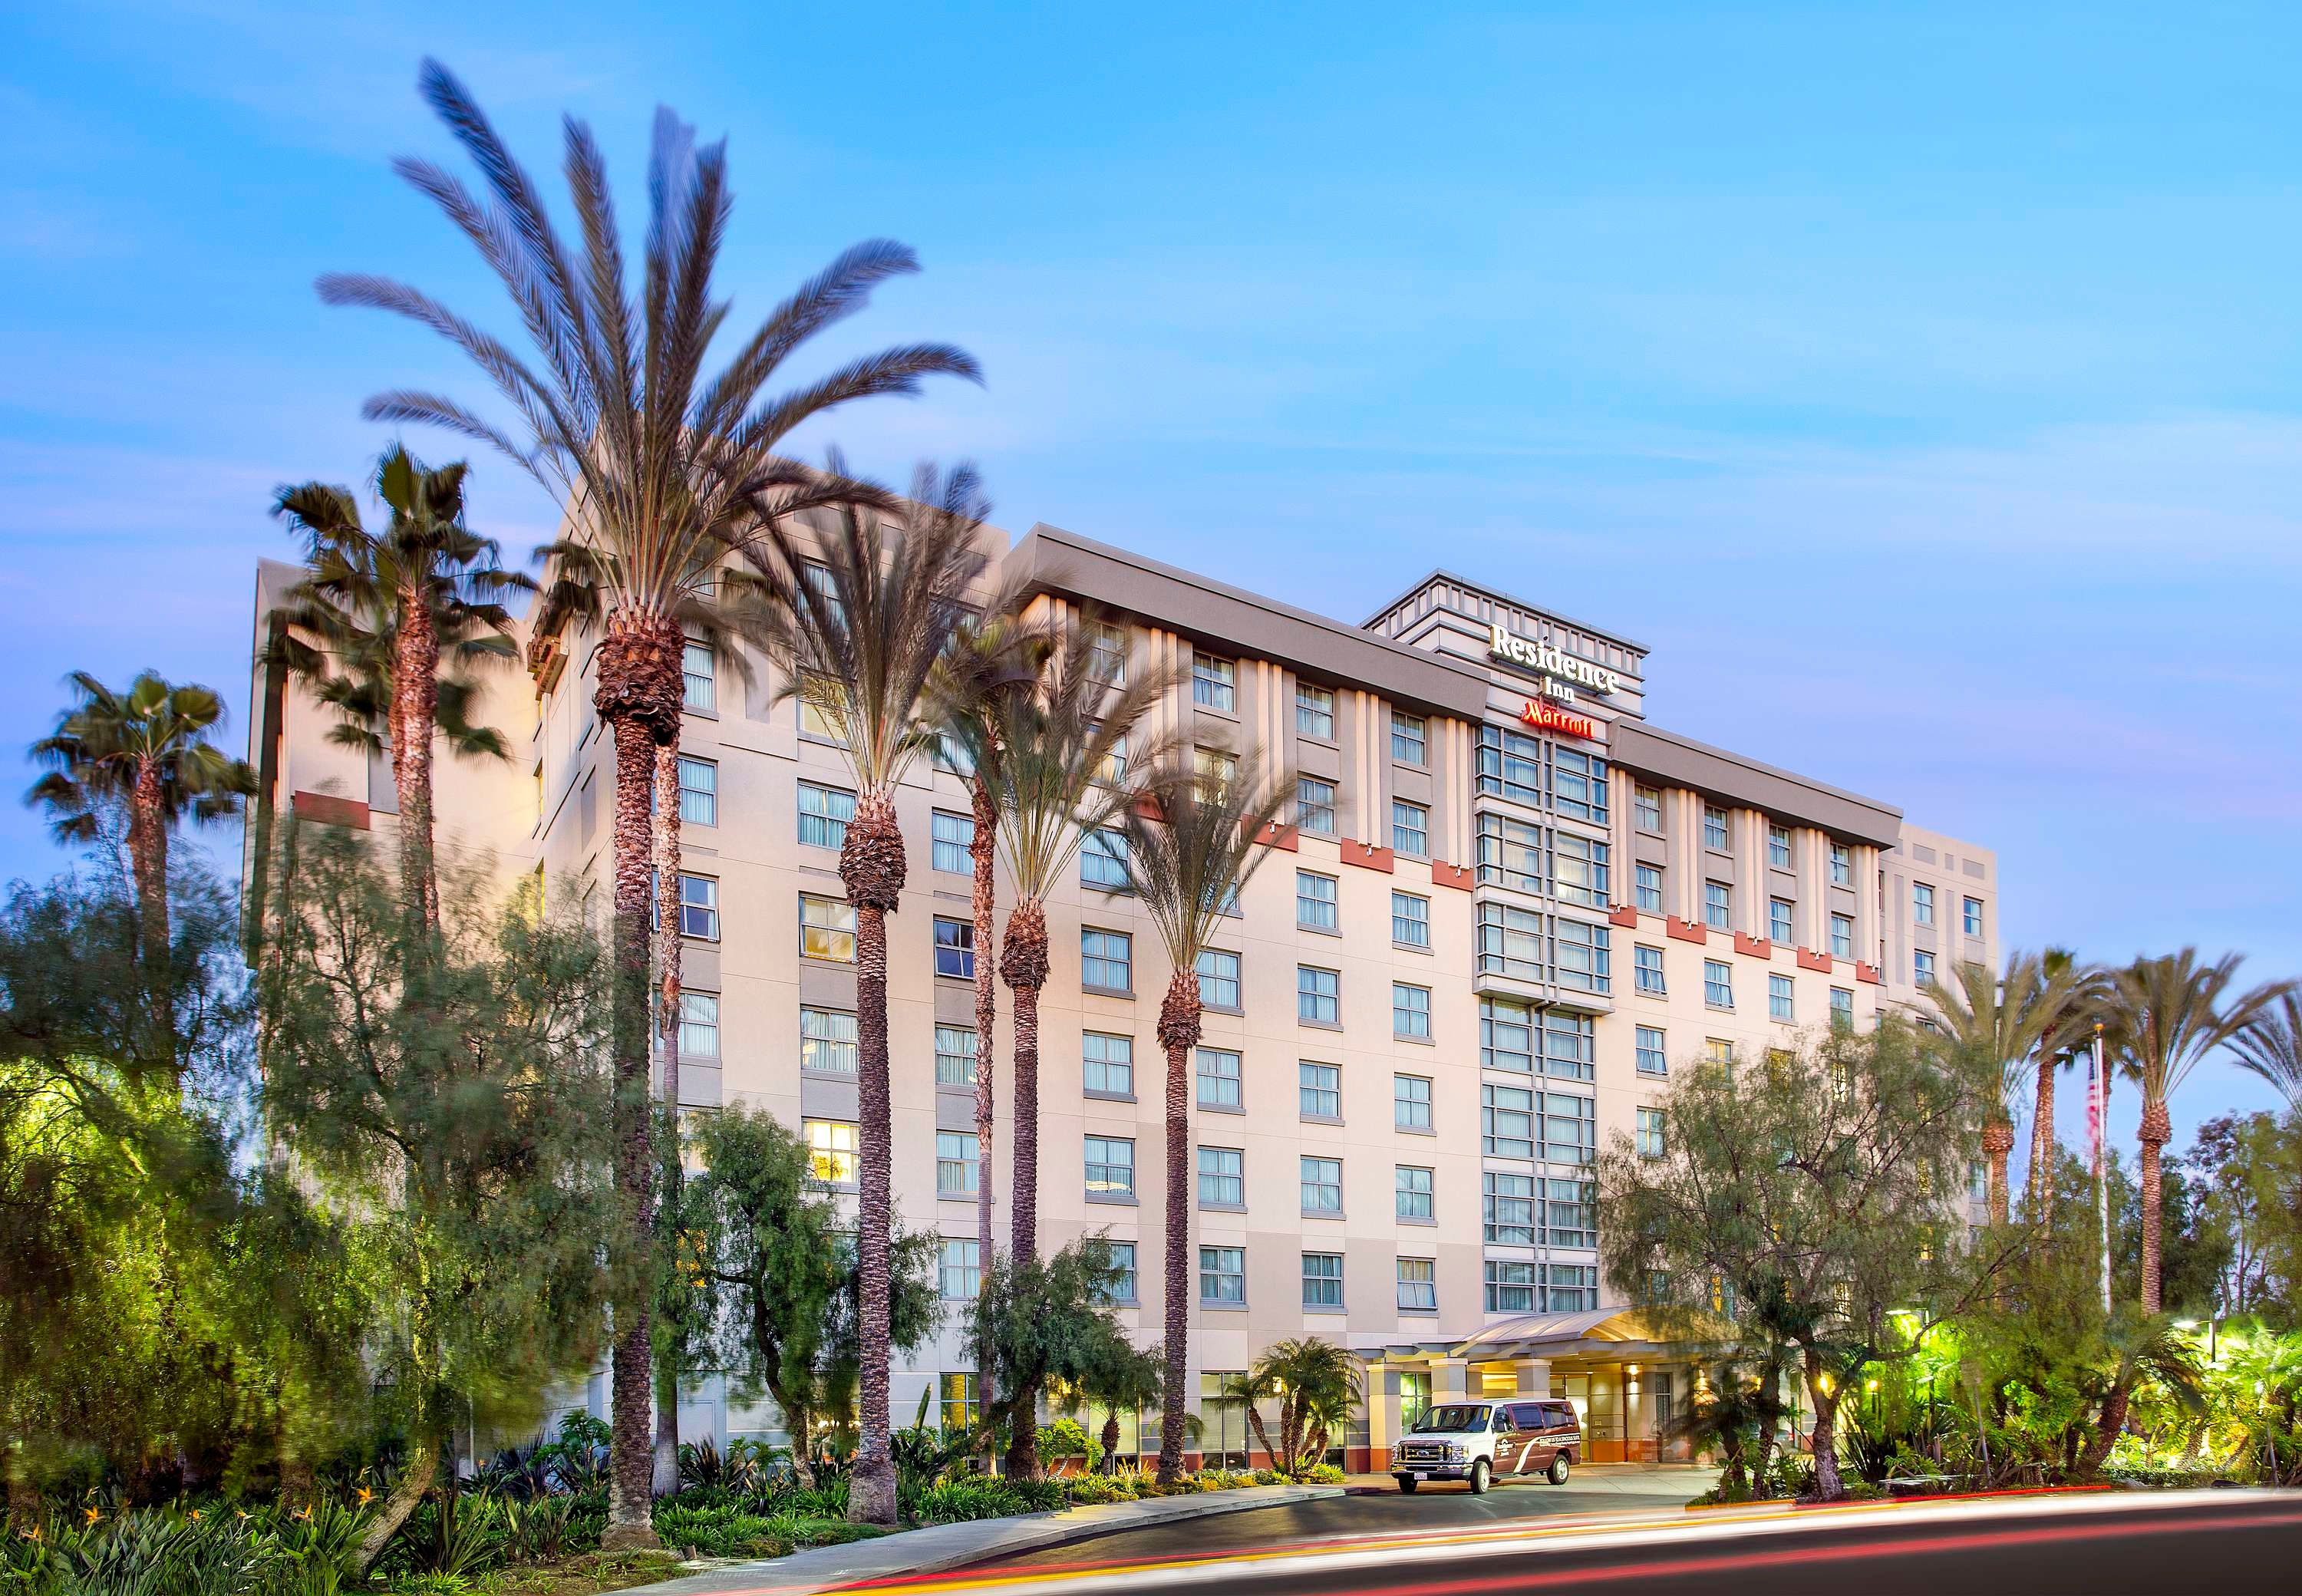 Exterior - With eight floors and 174 suites, our hotel in Orange County puts guests in the heart of the action with Disneyland® and the Irvine Spectrum nearby.